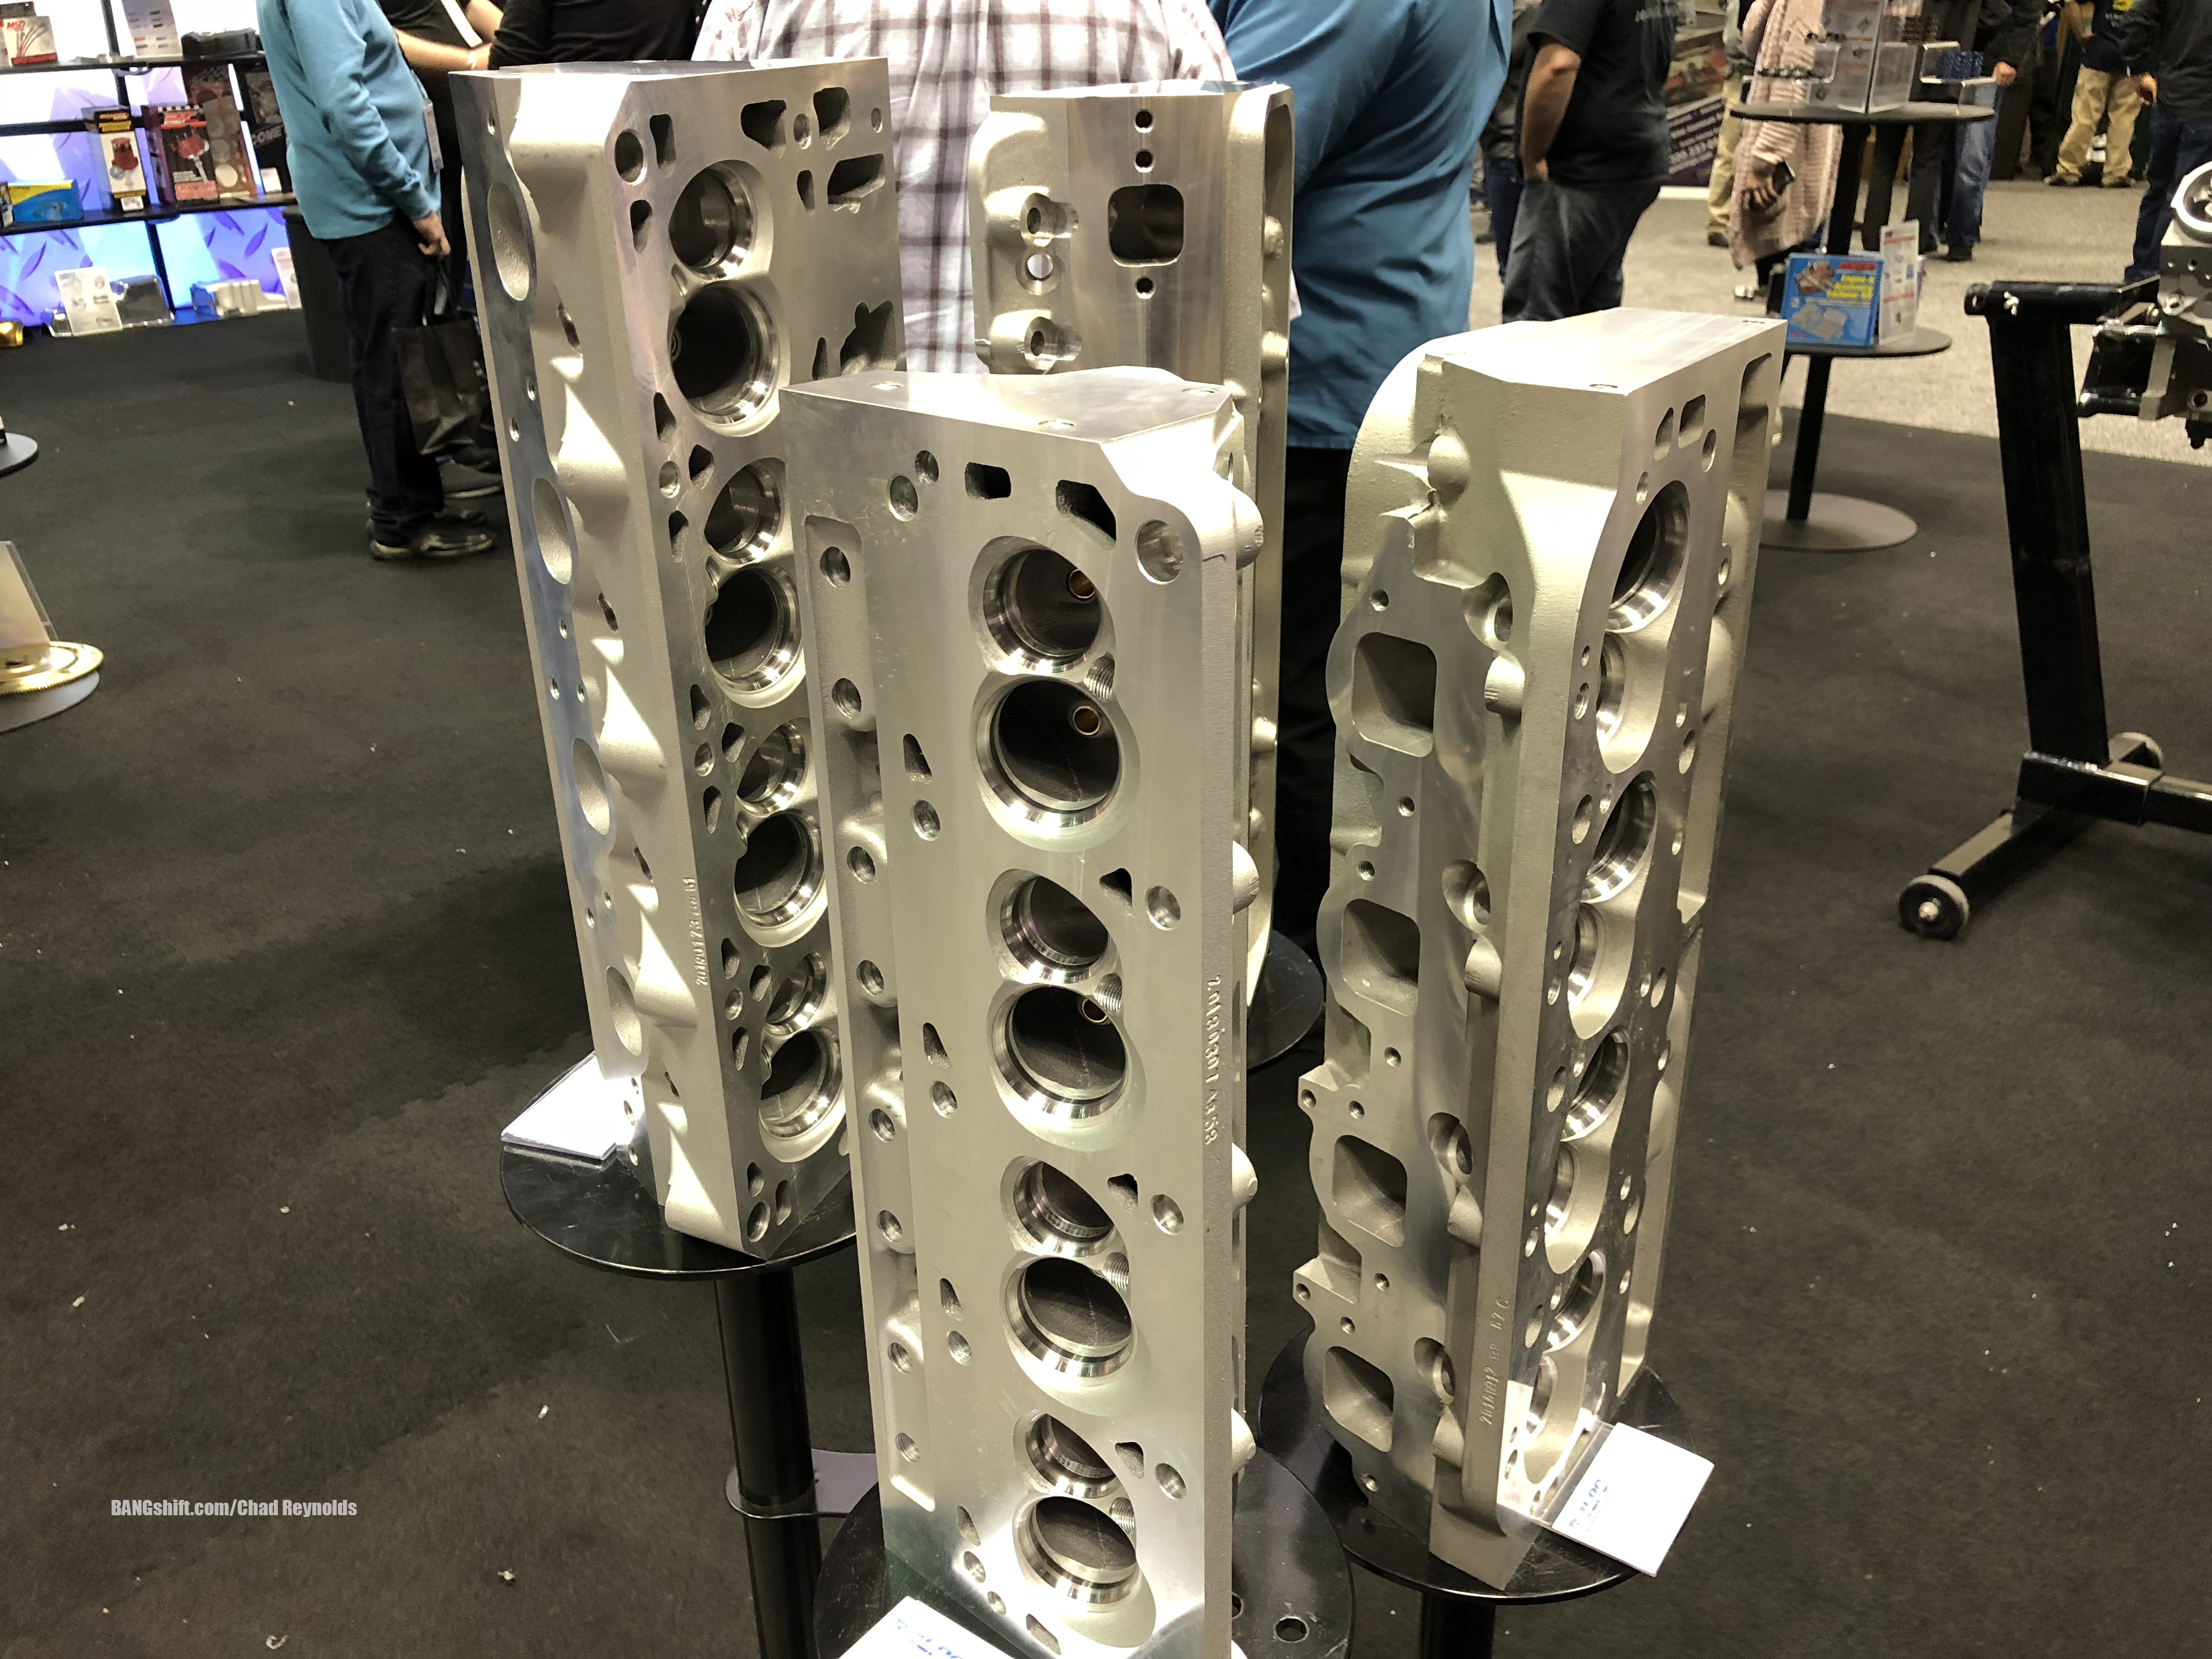 BangShift com PRI Show 2018: The In, Out And About In The